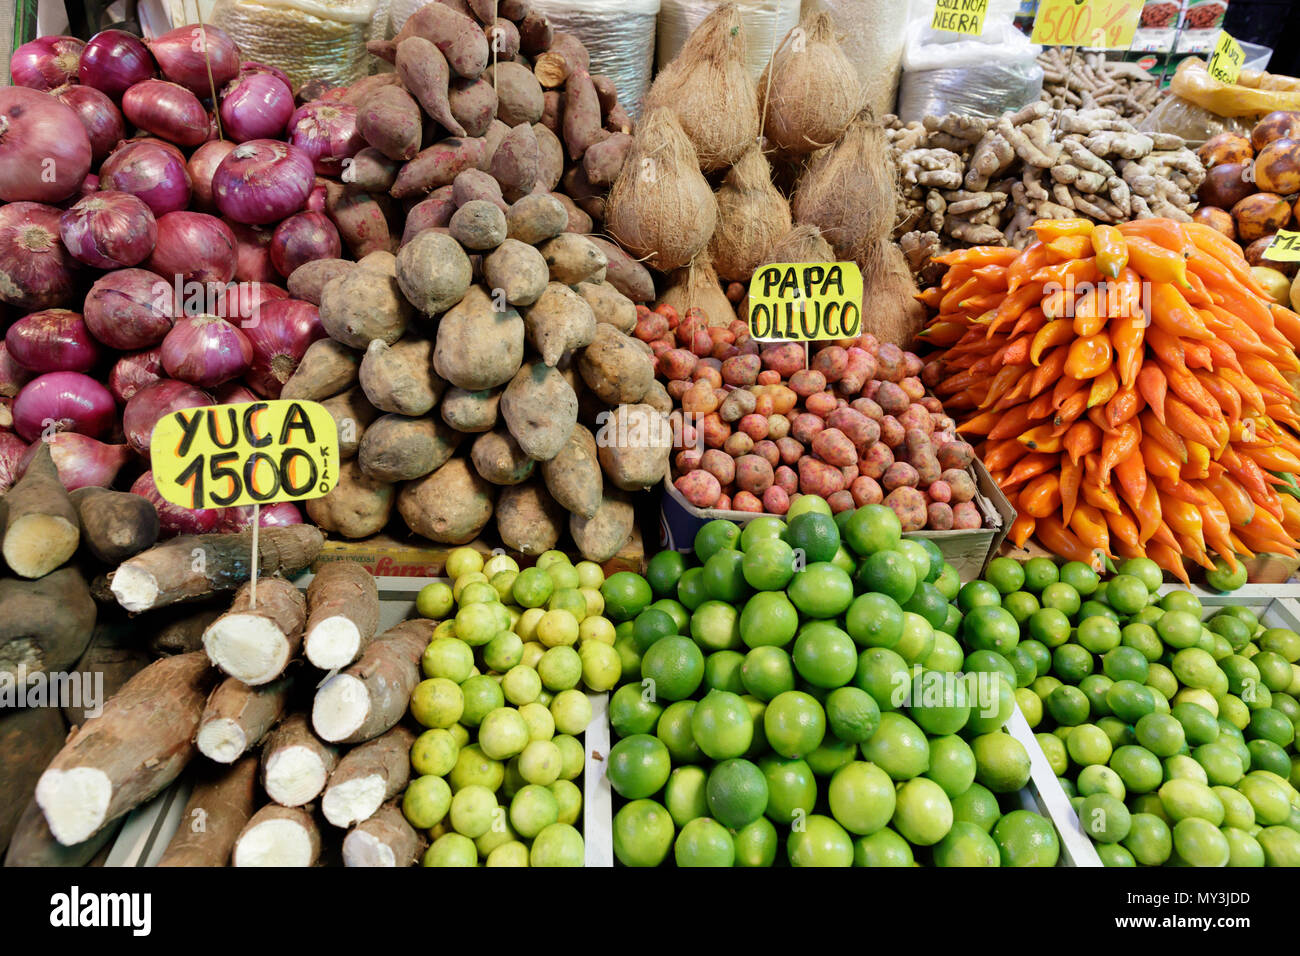 Santiago, Chile: Vega Market aka Mercado Vega is the place to go for fresh and regional produce - Stock Image